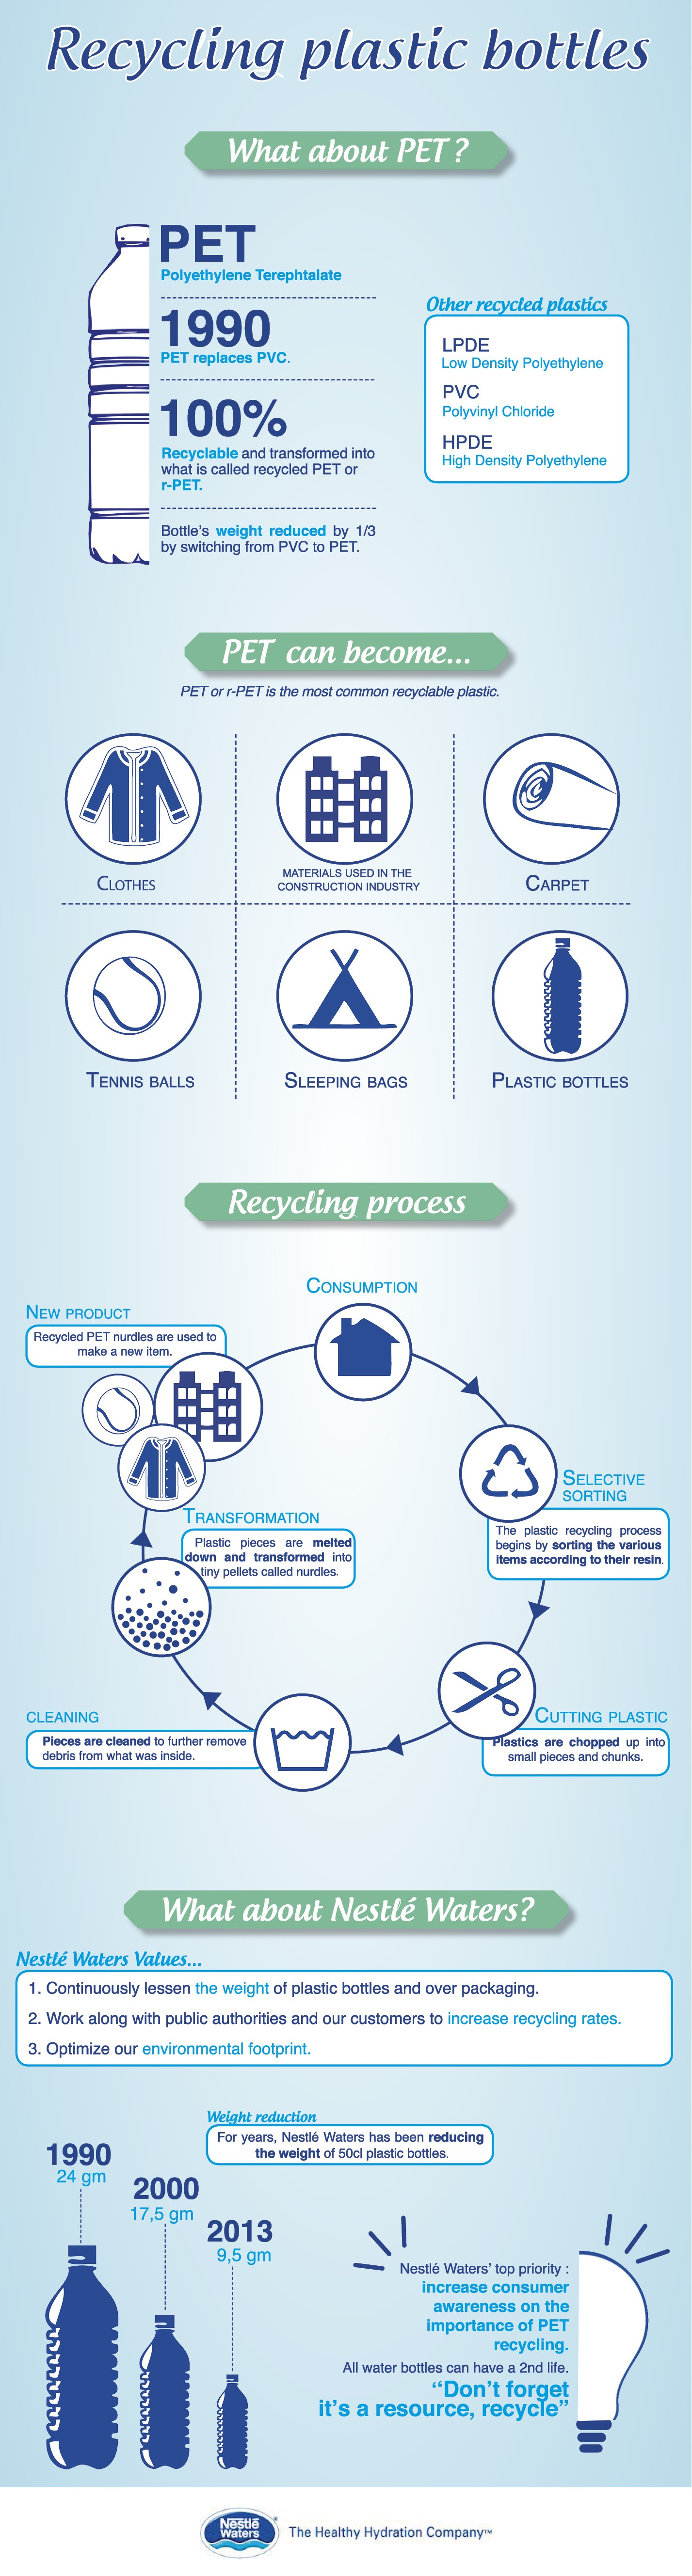 nestle-recycling-plastic-bottles